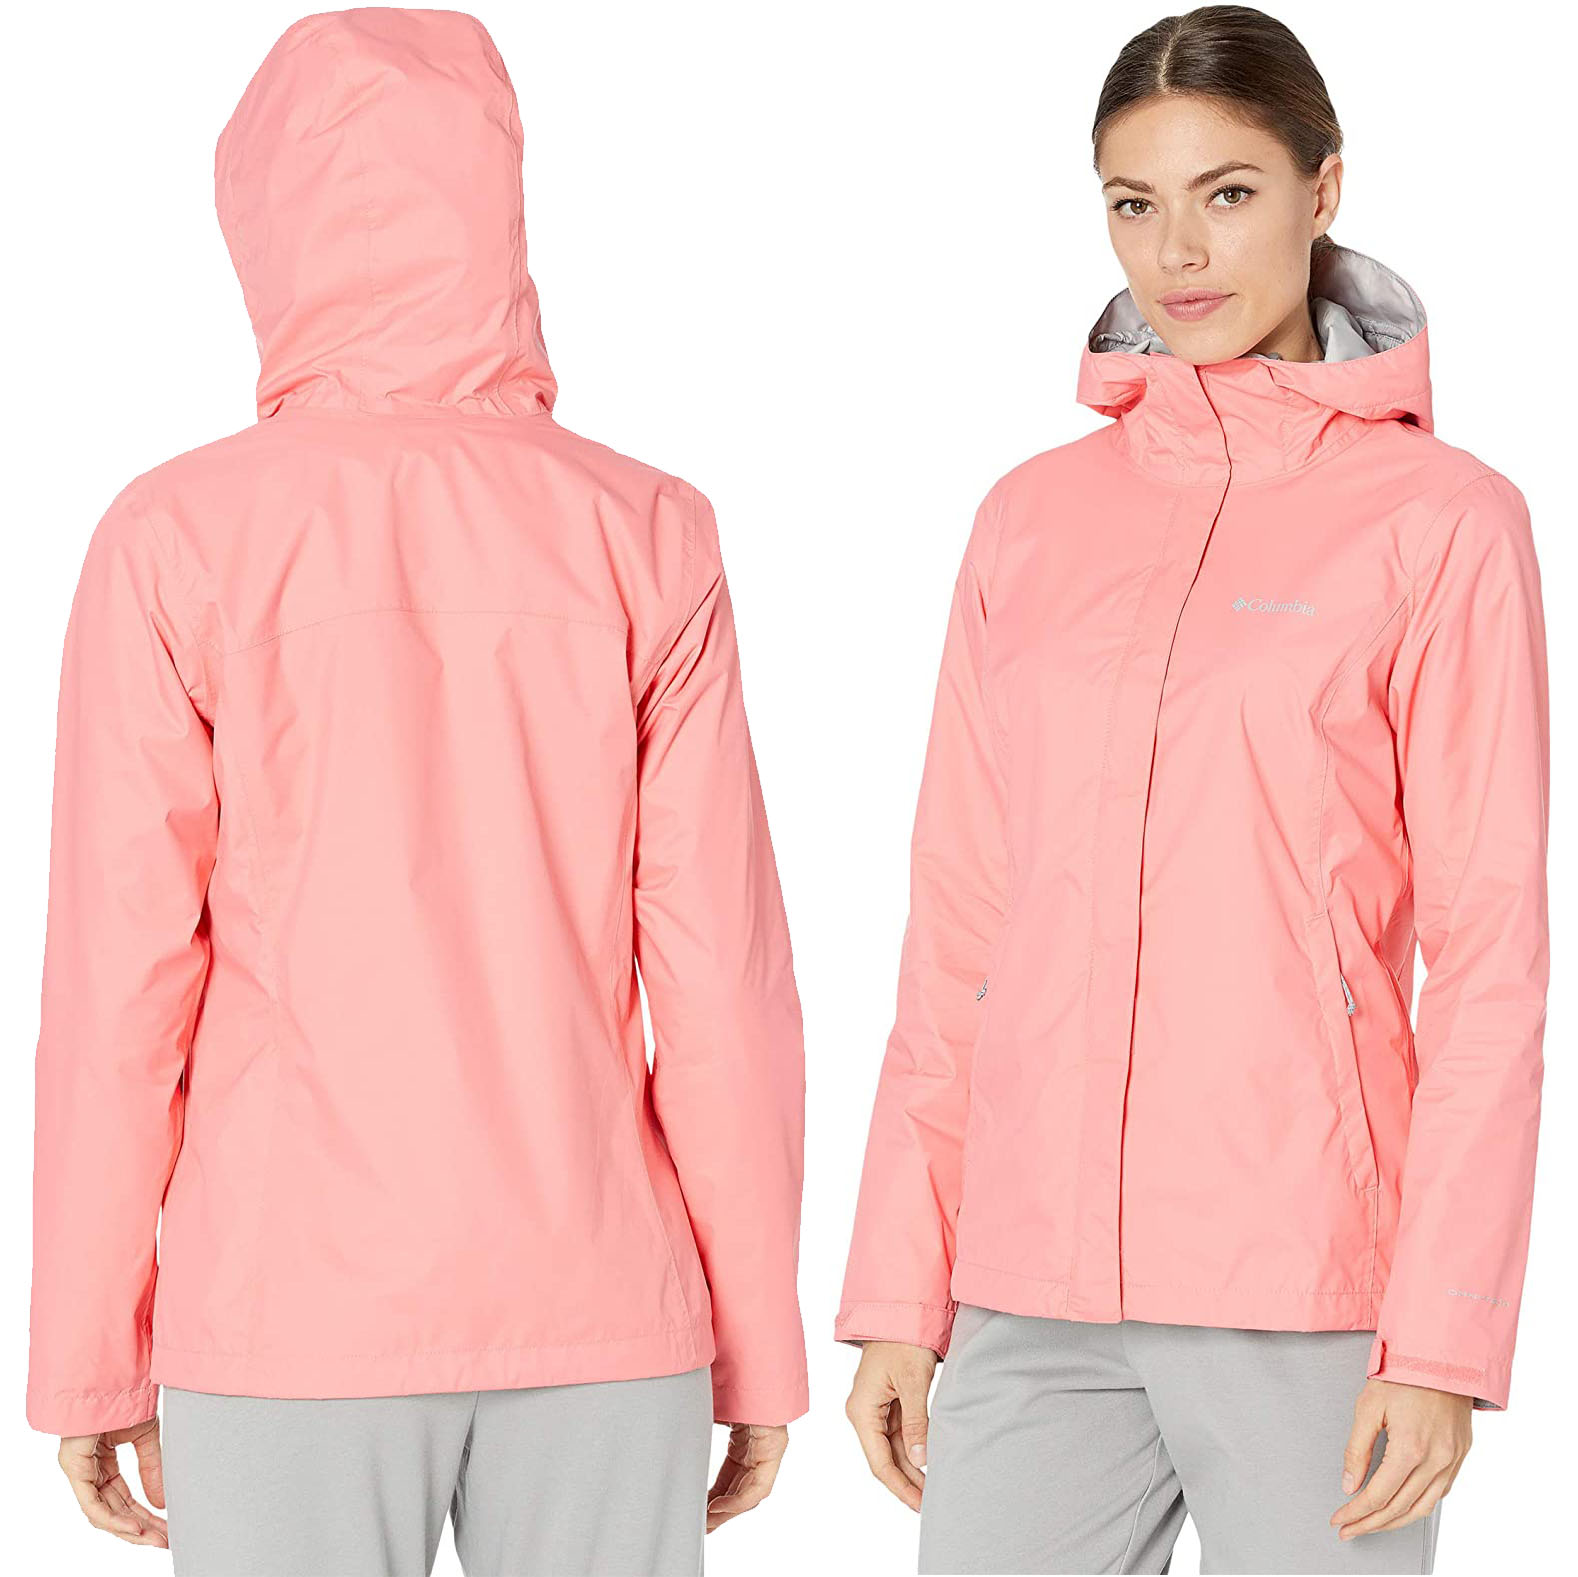 Available in multiple colors, the Arcadia II nylon jacket is waterproof and breathable